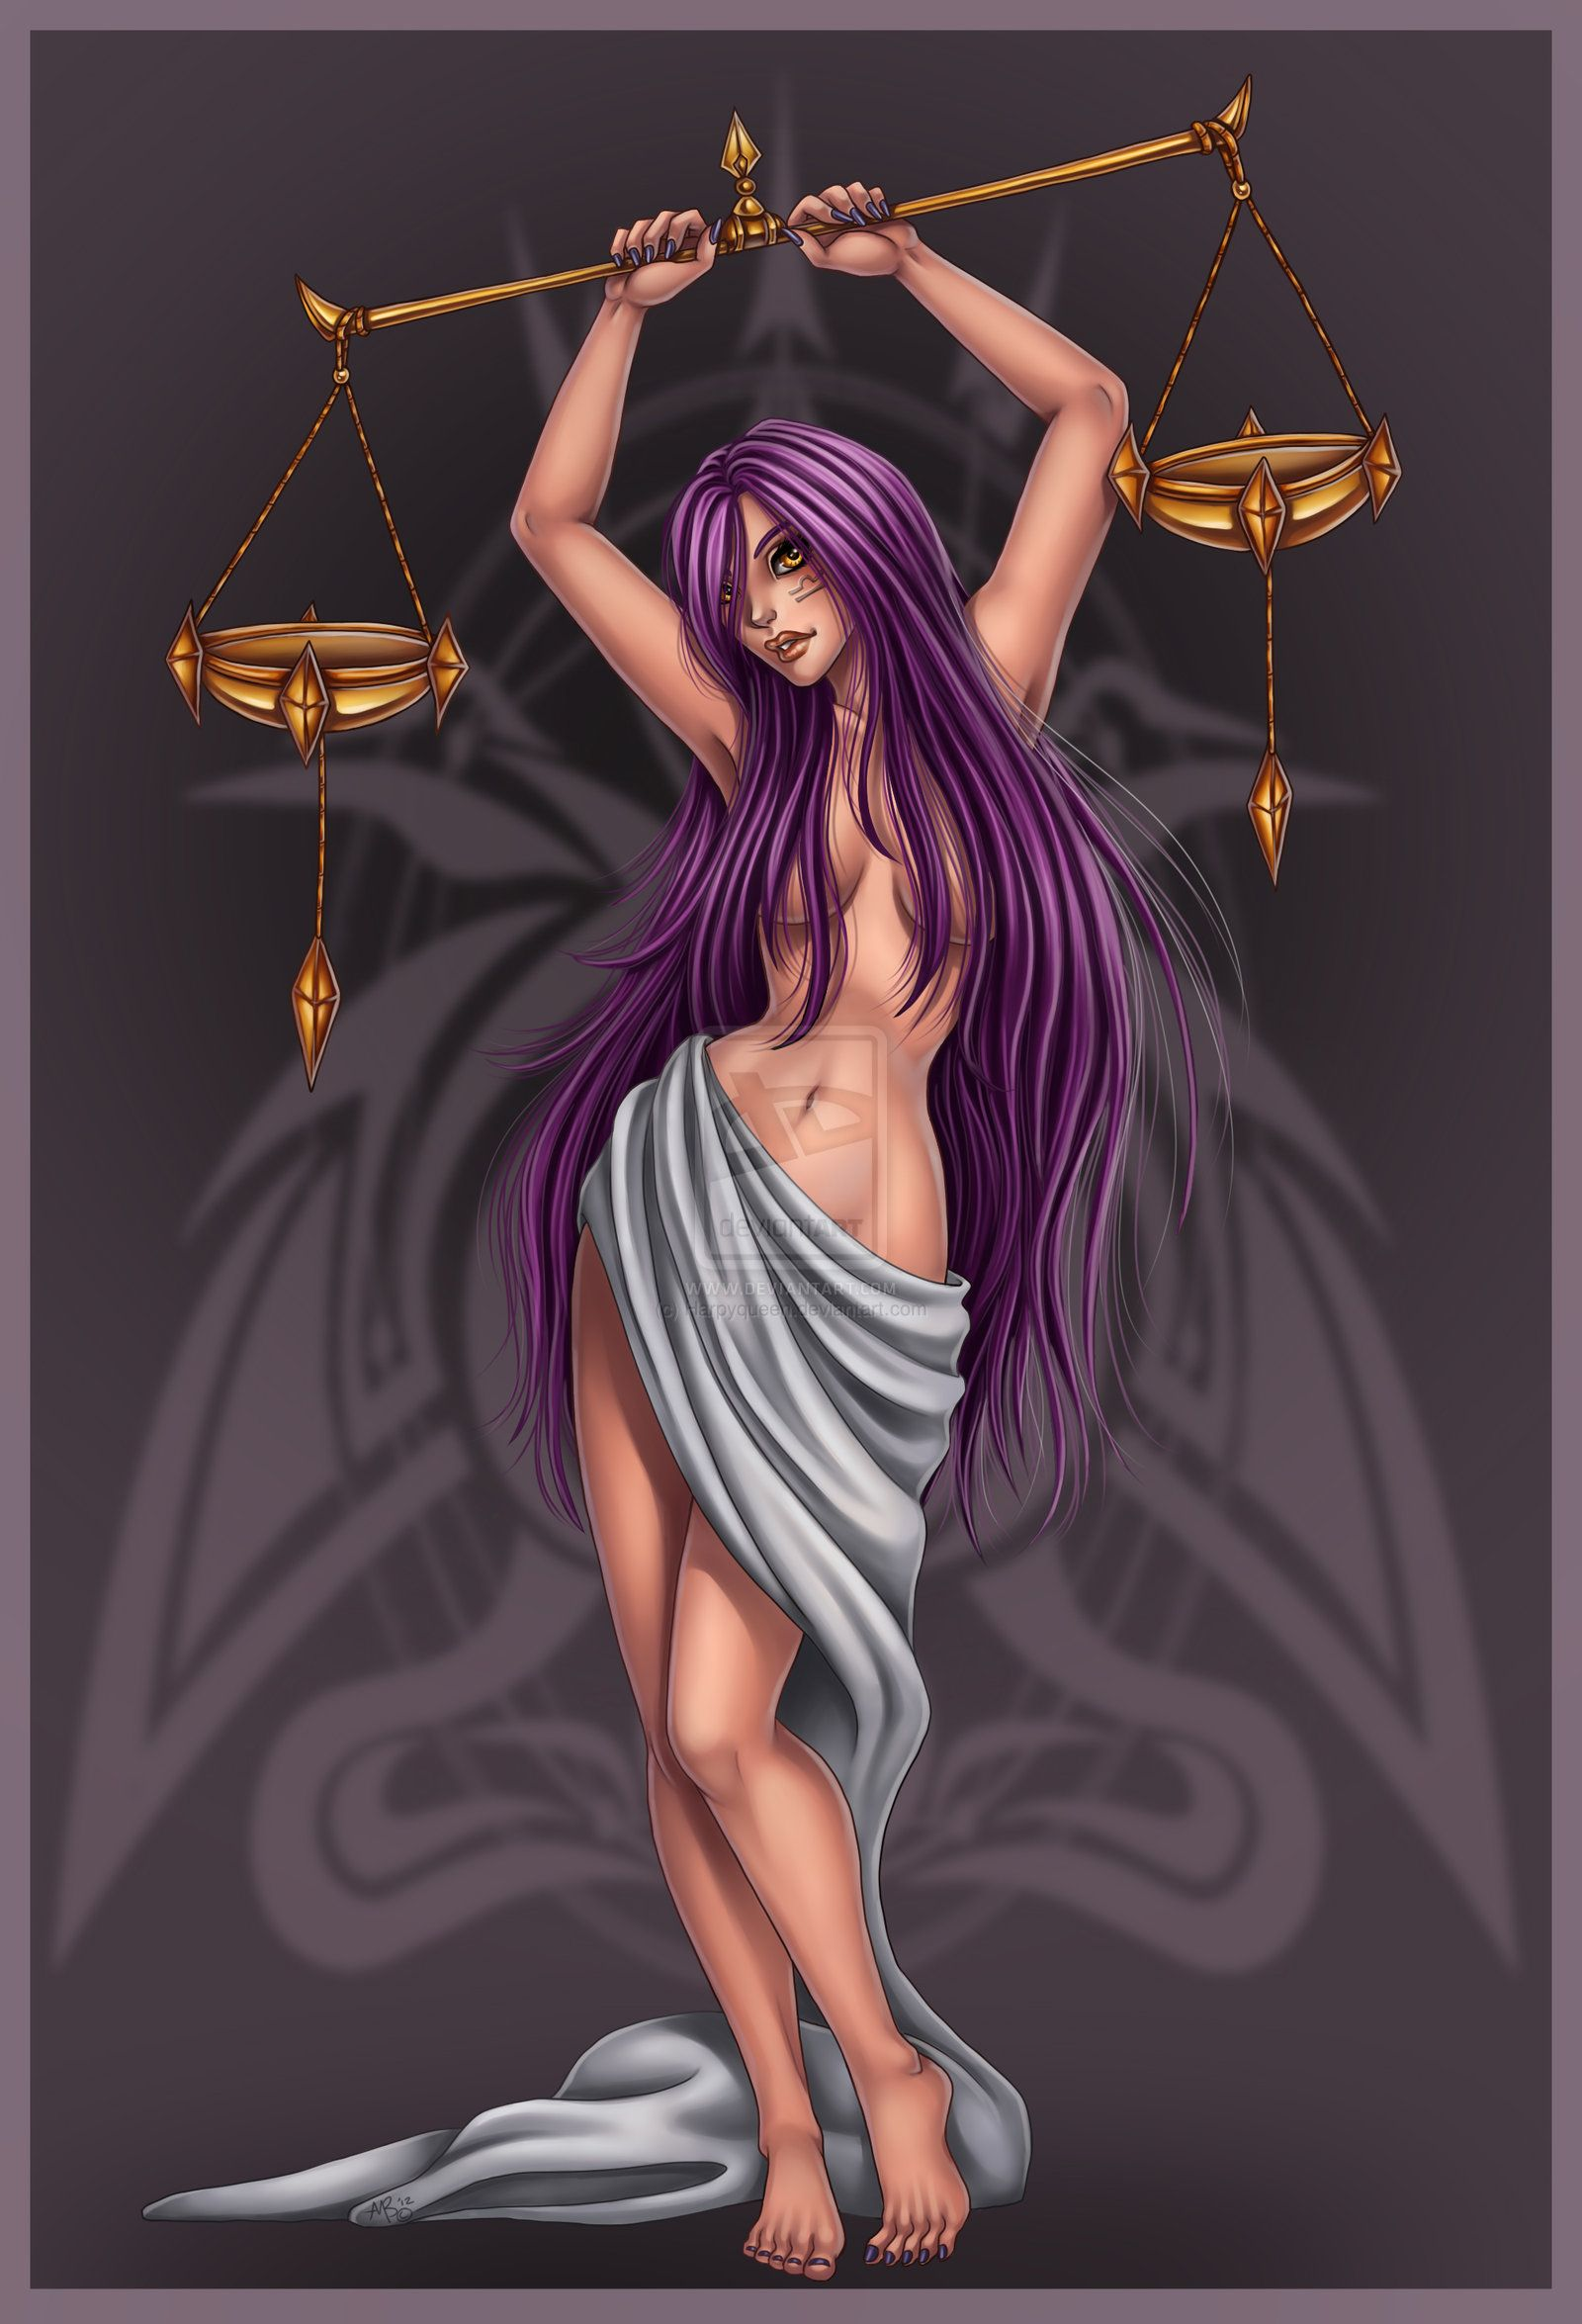 Aries Libra Libra Commission By Harpyqueen On Deviantart